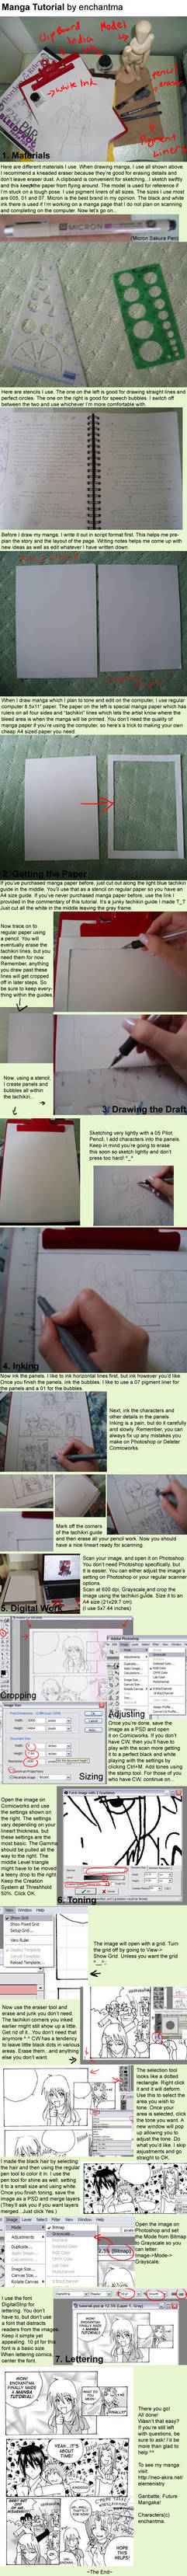 Manga-Making Tutorial by enchantma